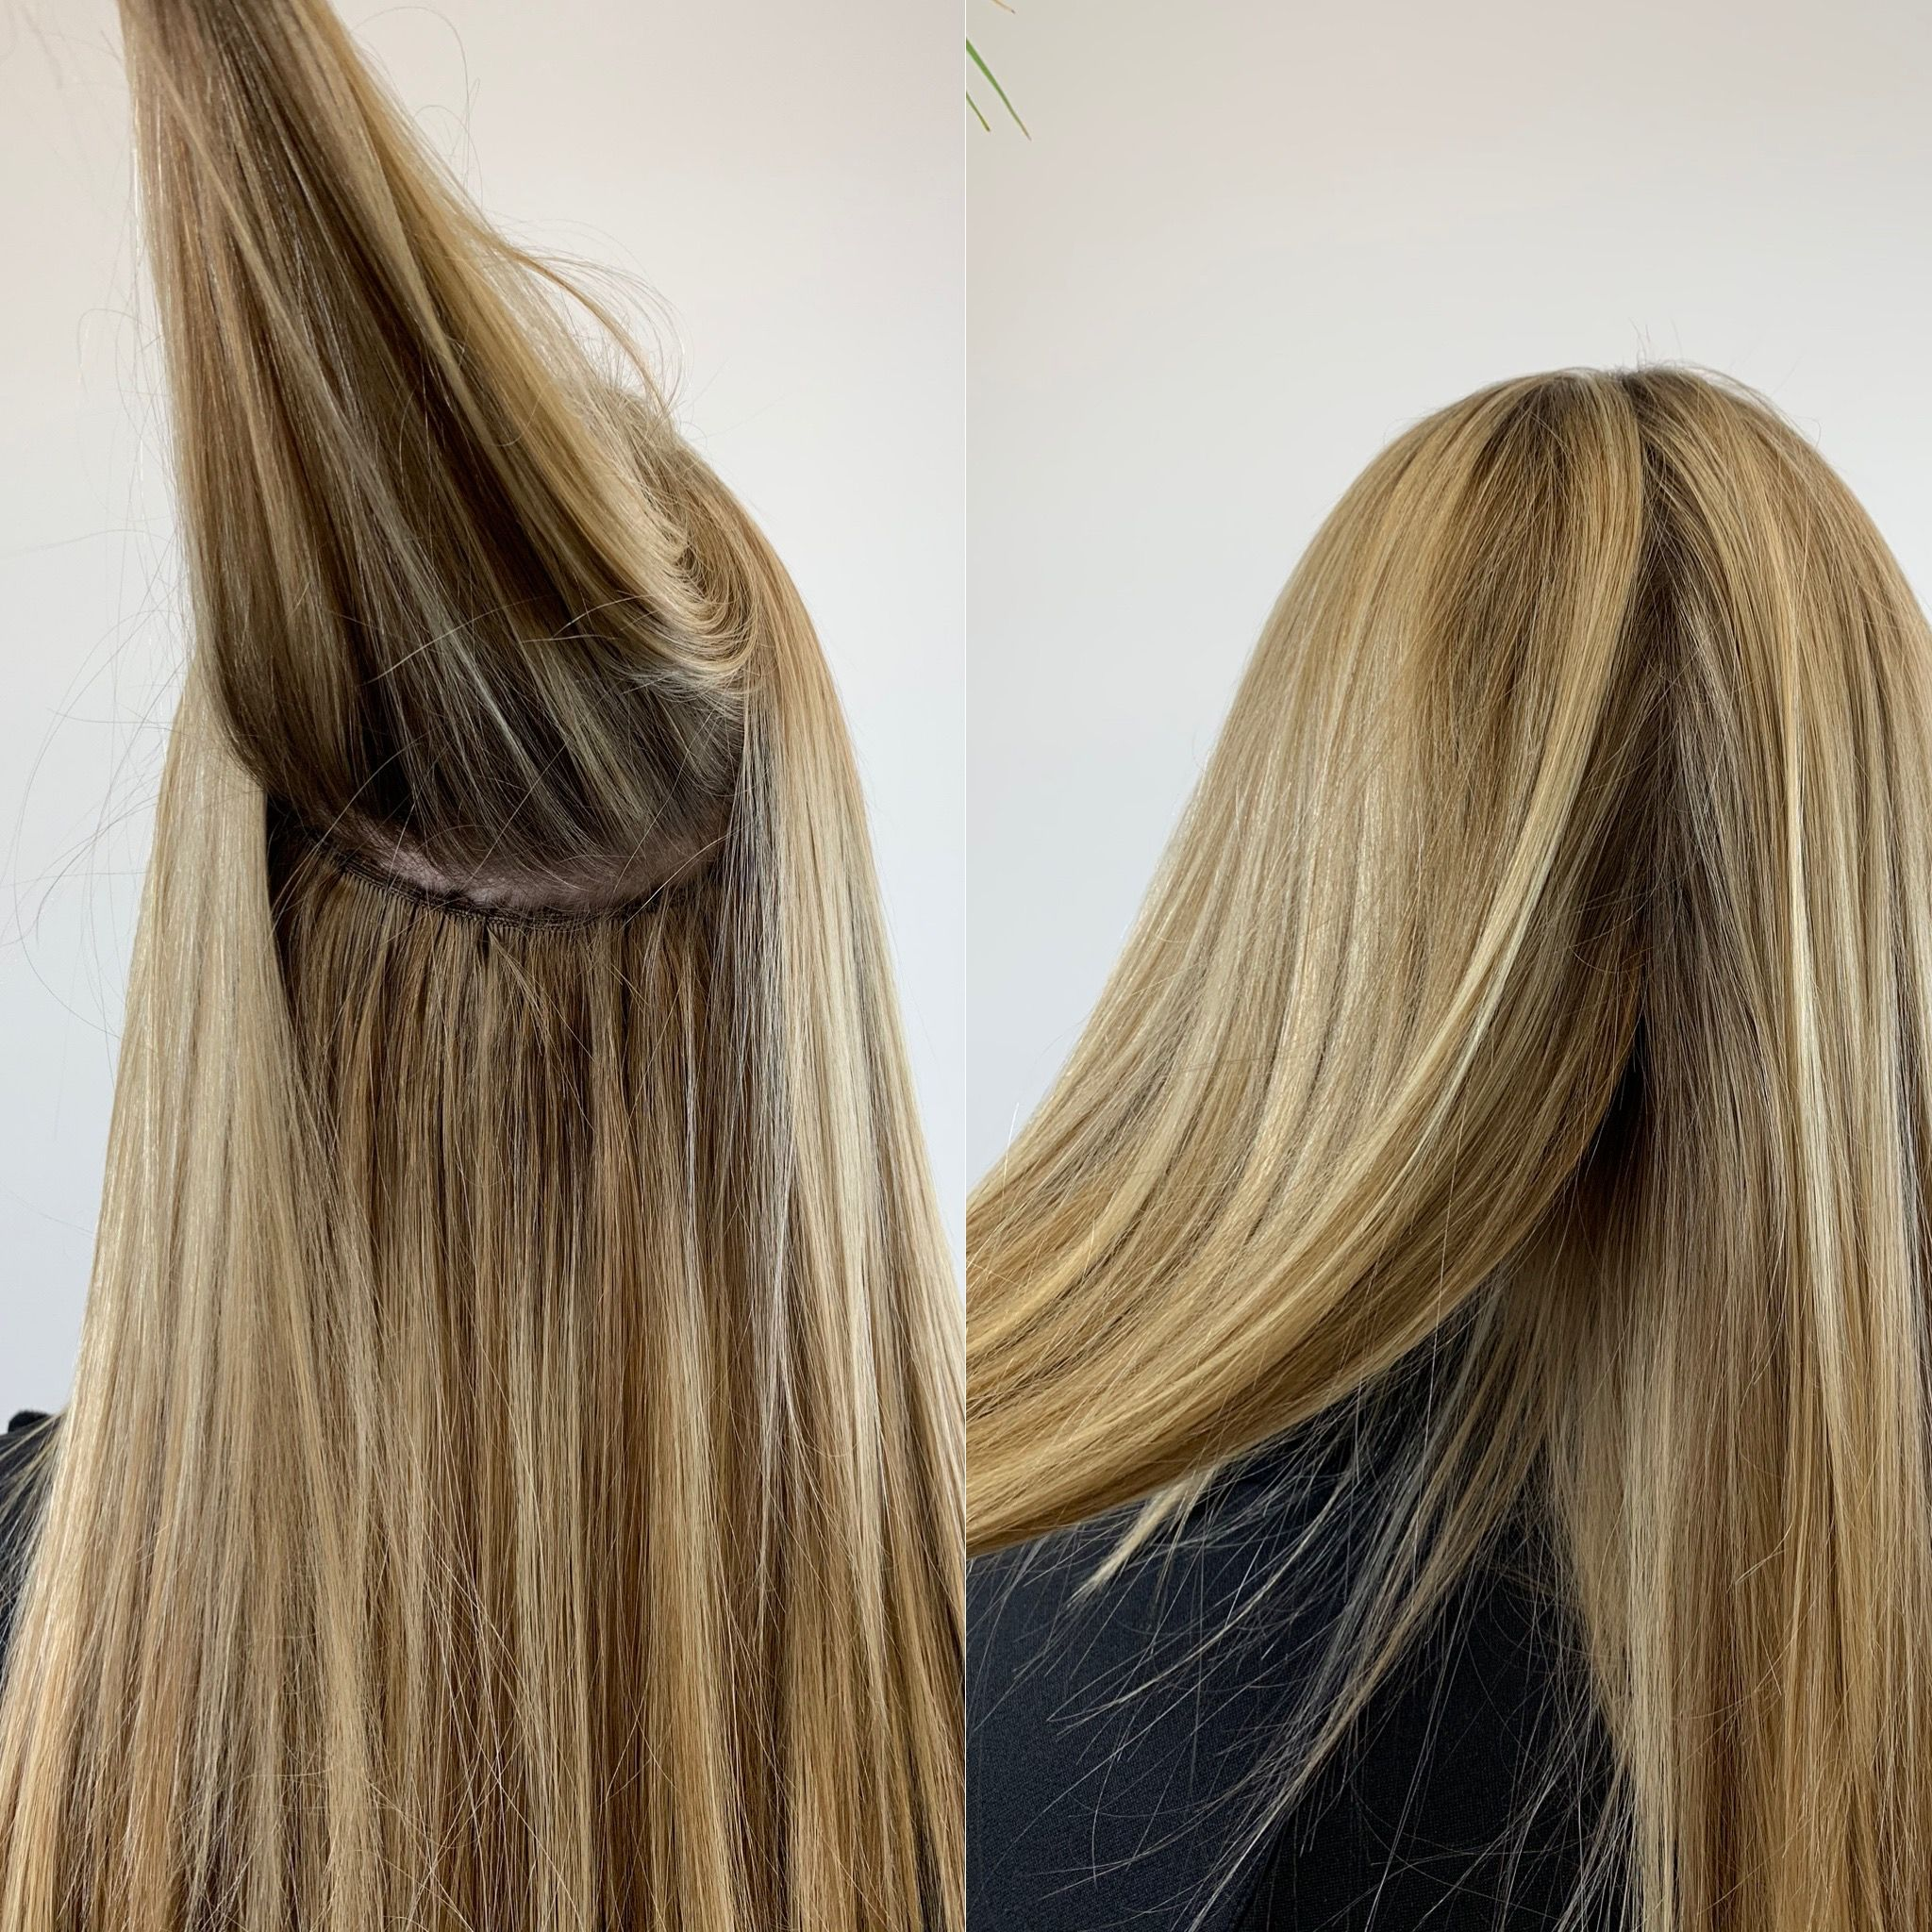 Seamless Blend Of Nbr Hand Tied Extensions Organic Hair Salon Hair Extensions Near Me Organic Hair